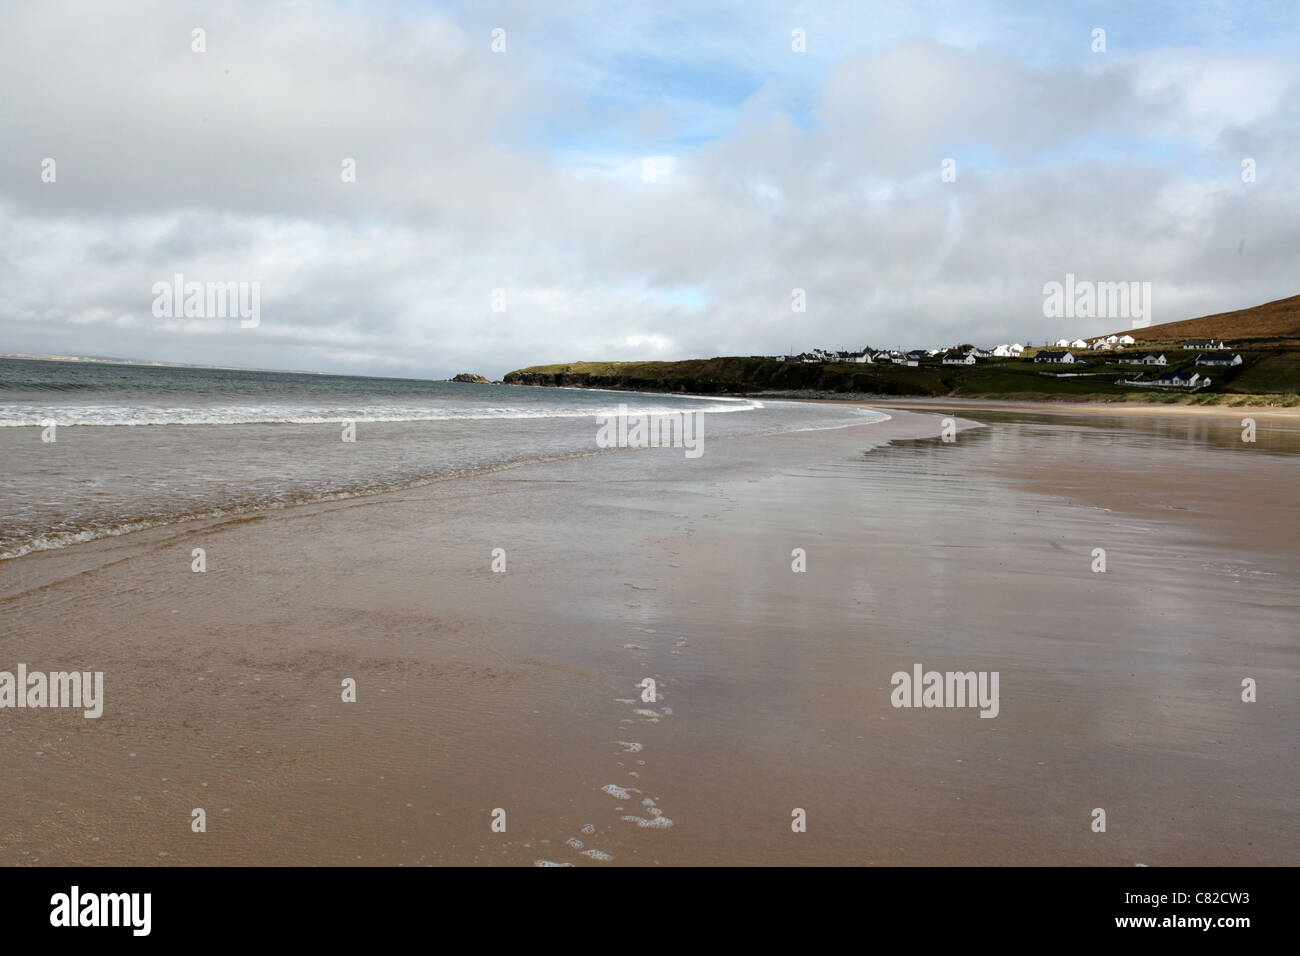 The Beach at Dugort on Achill Island in County Mayo called Golden Strand - Stock Image